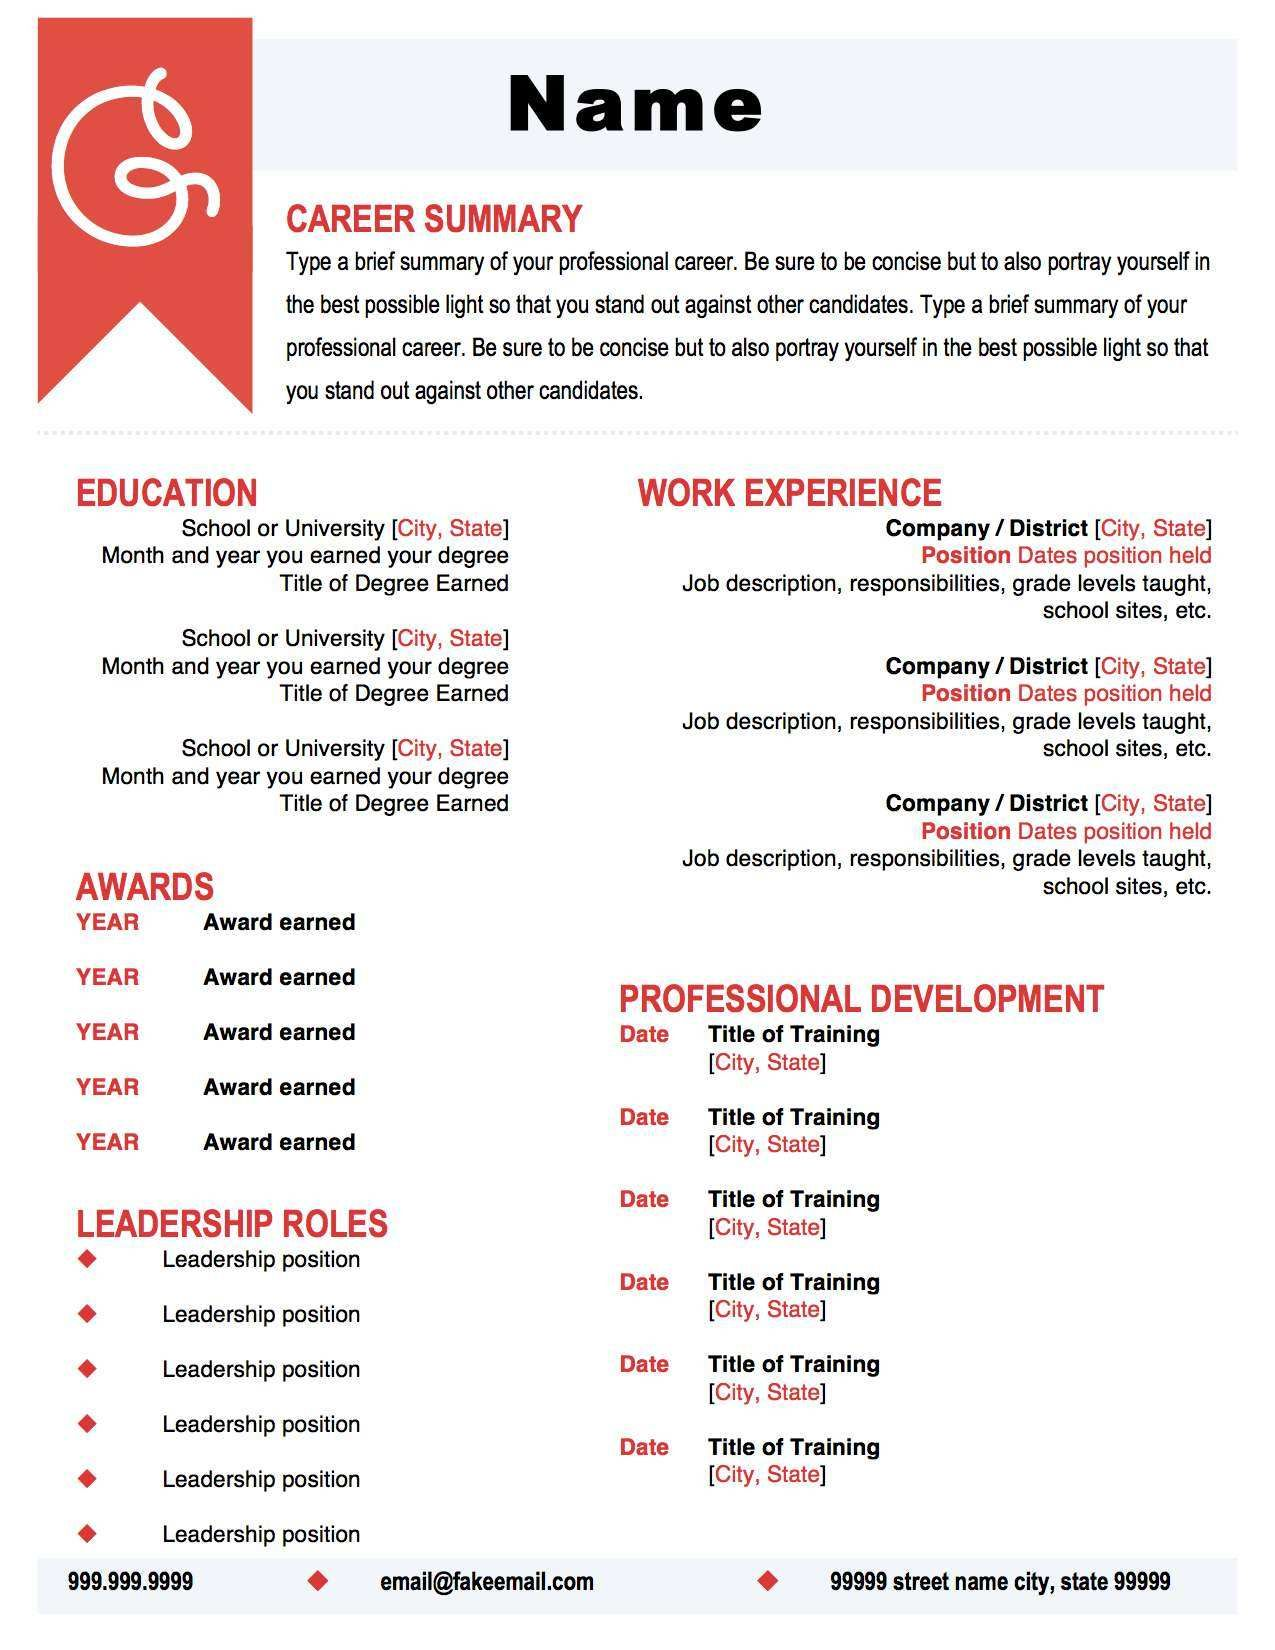 Coral And Black Resume Template Make Your Resume Pop With This